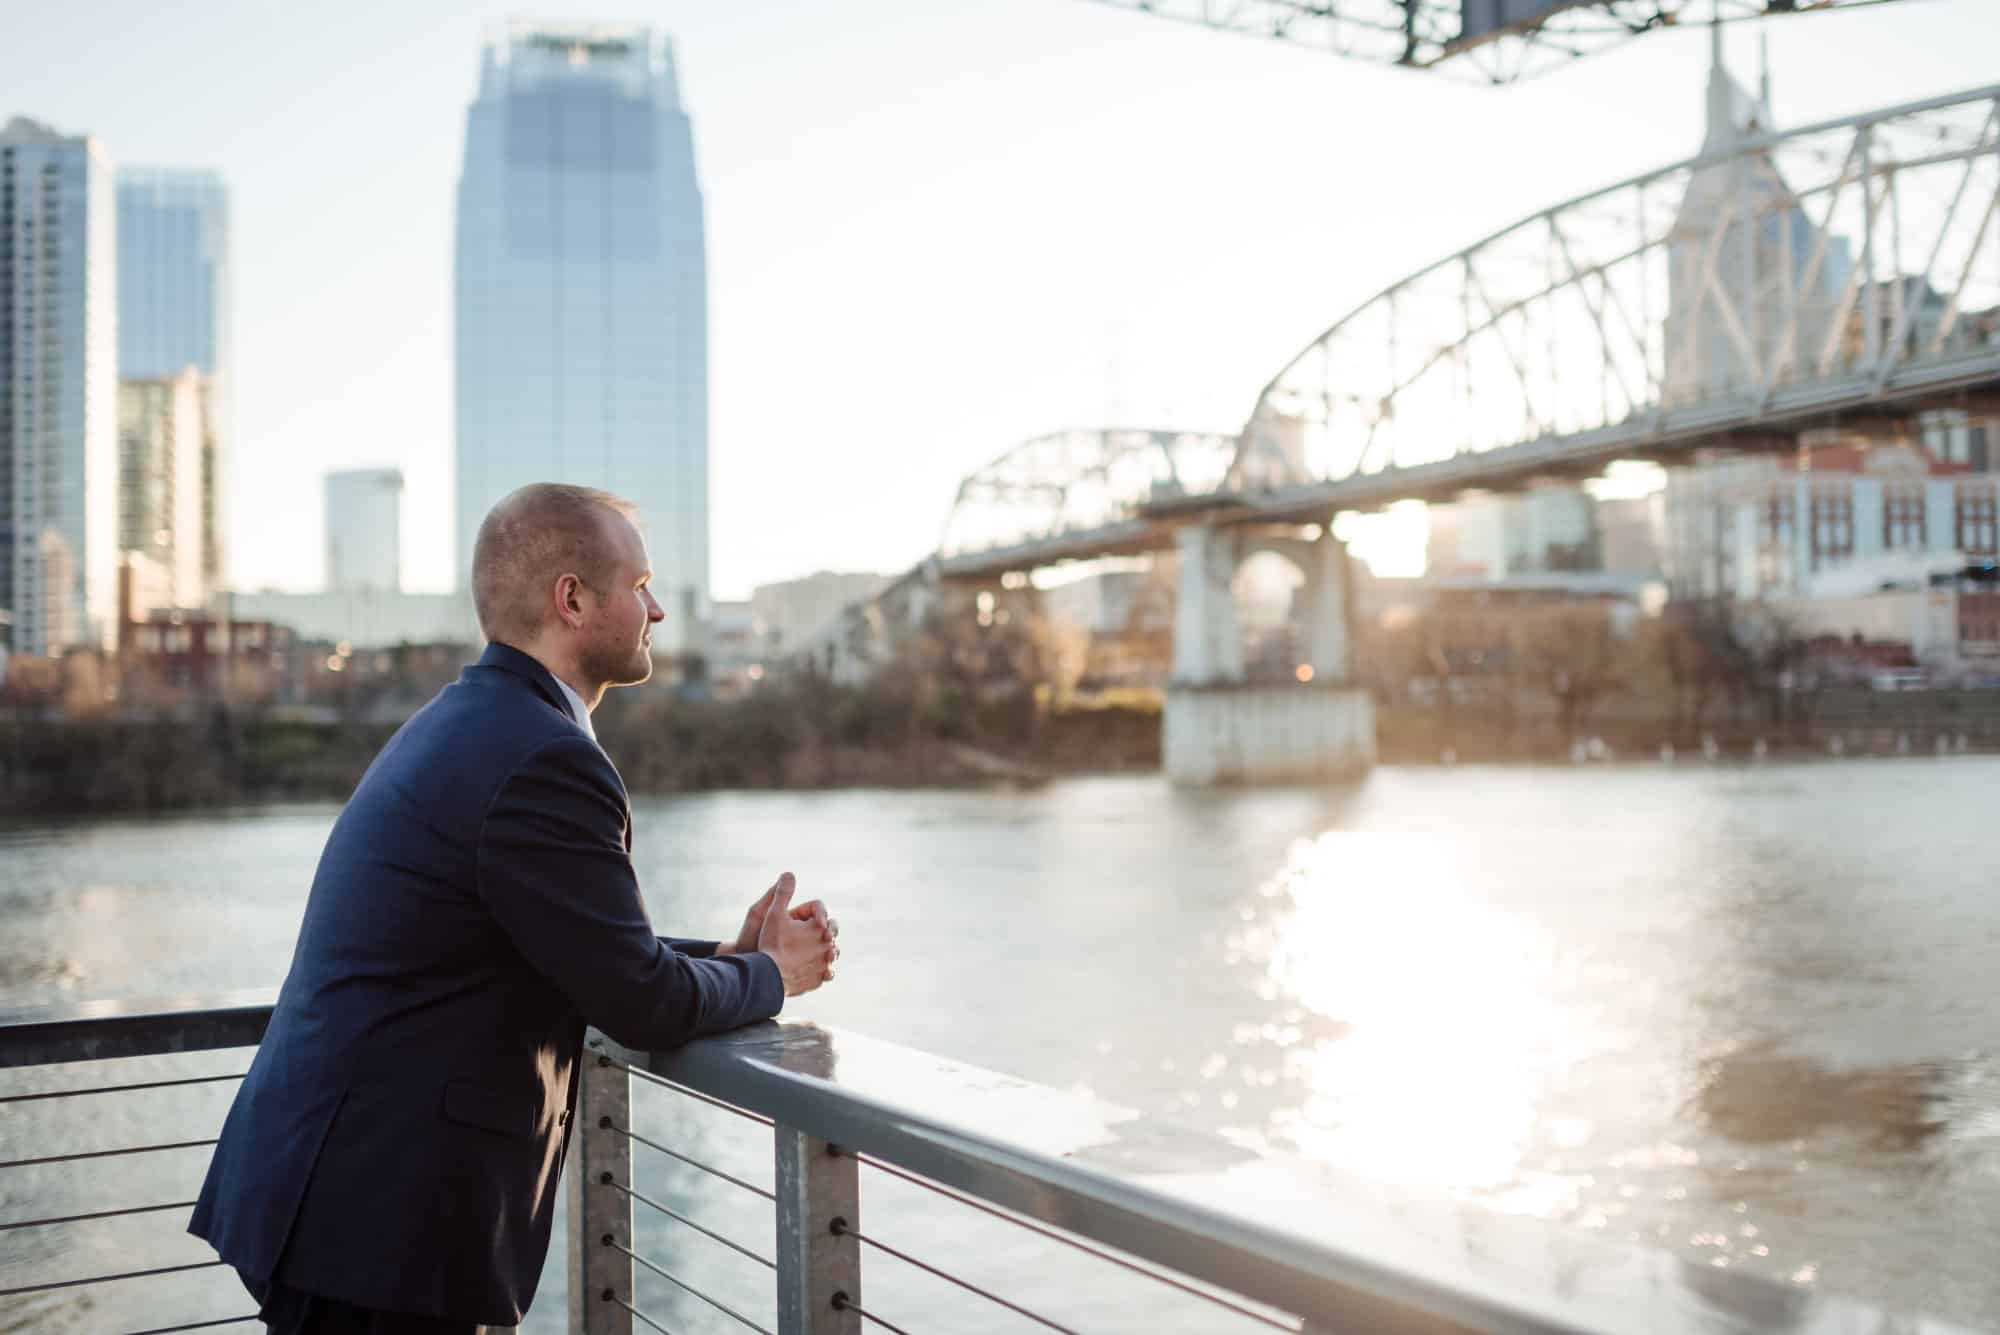 Photo of musician Ryan Middagh wearing a suit and leaning against a railing on a bridge